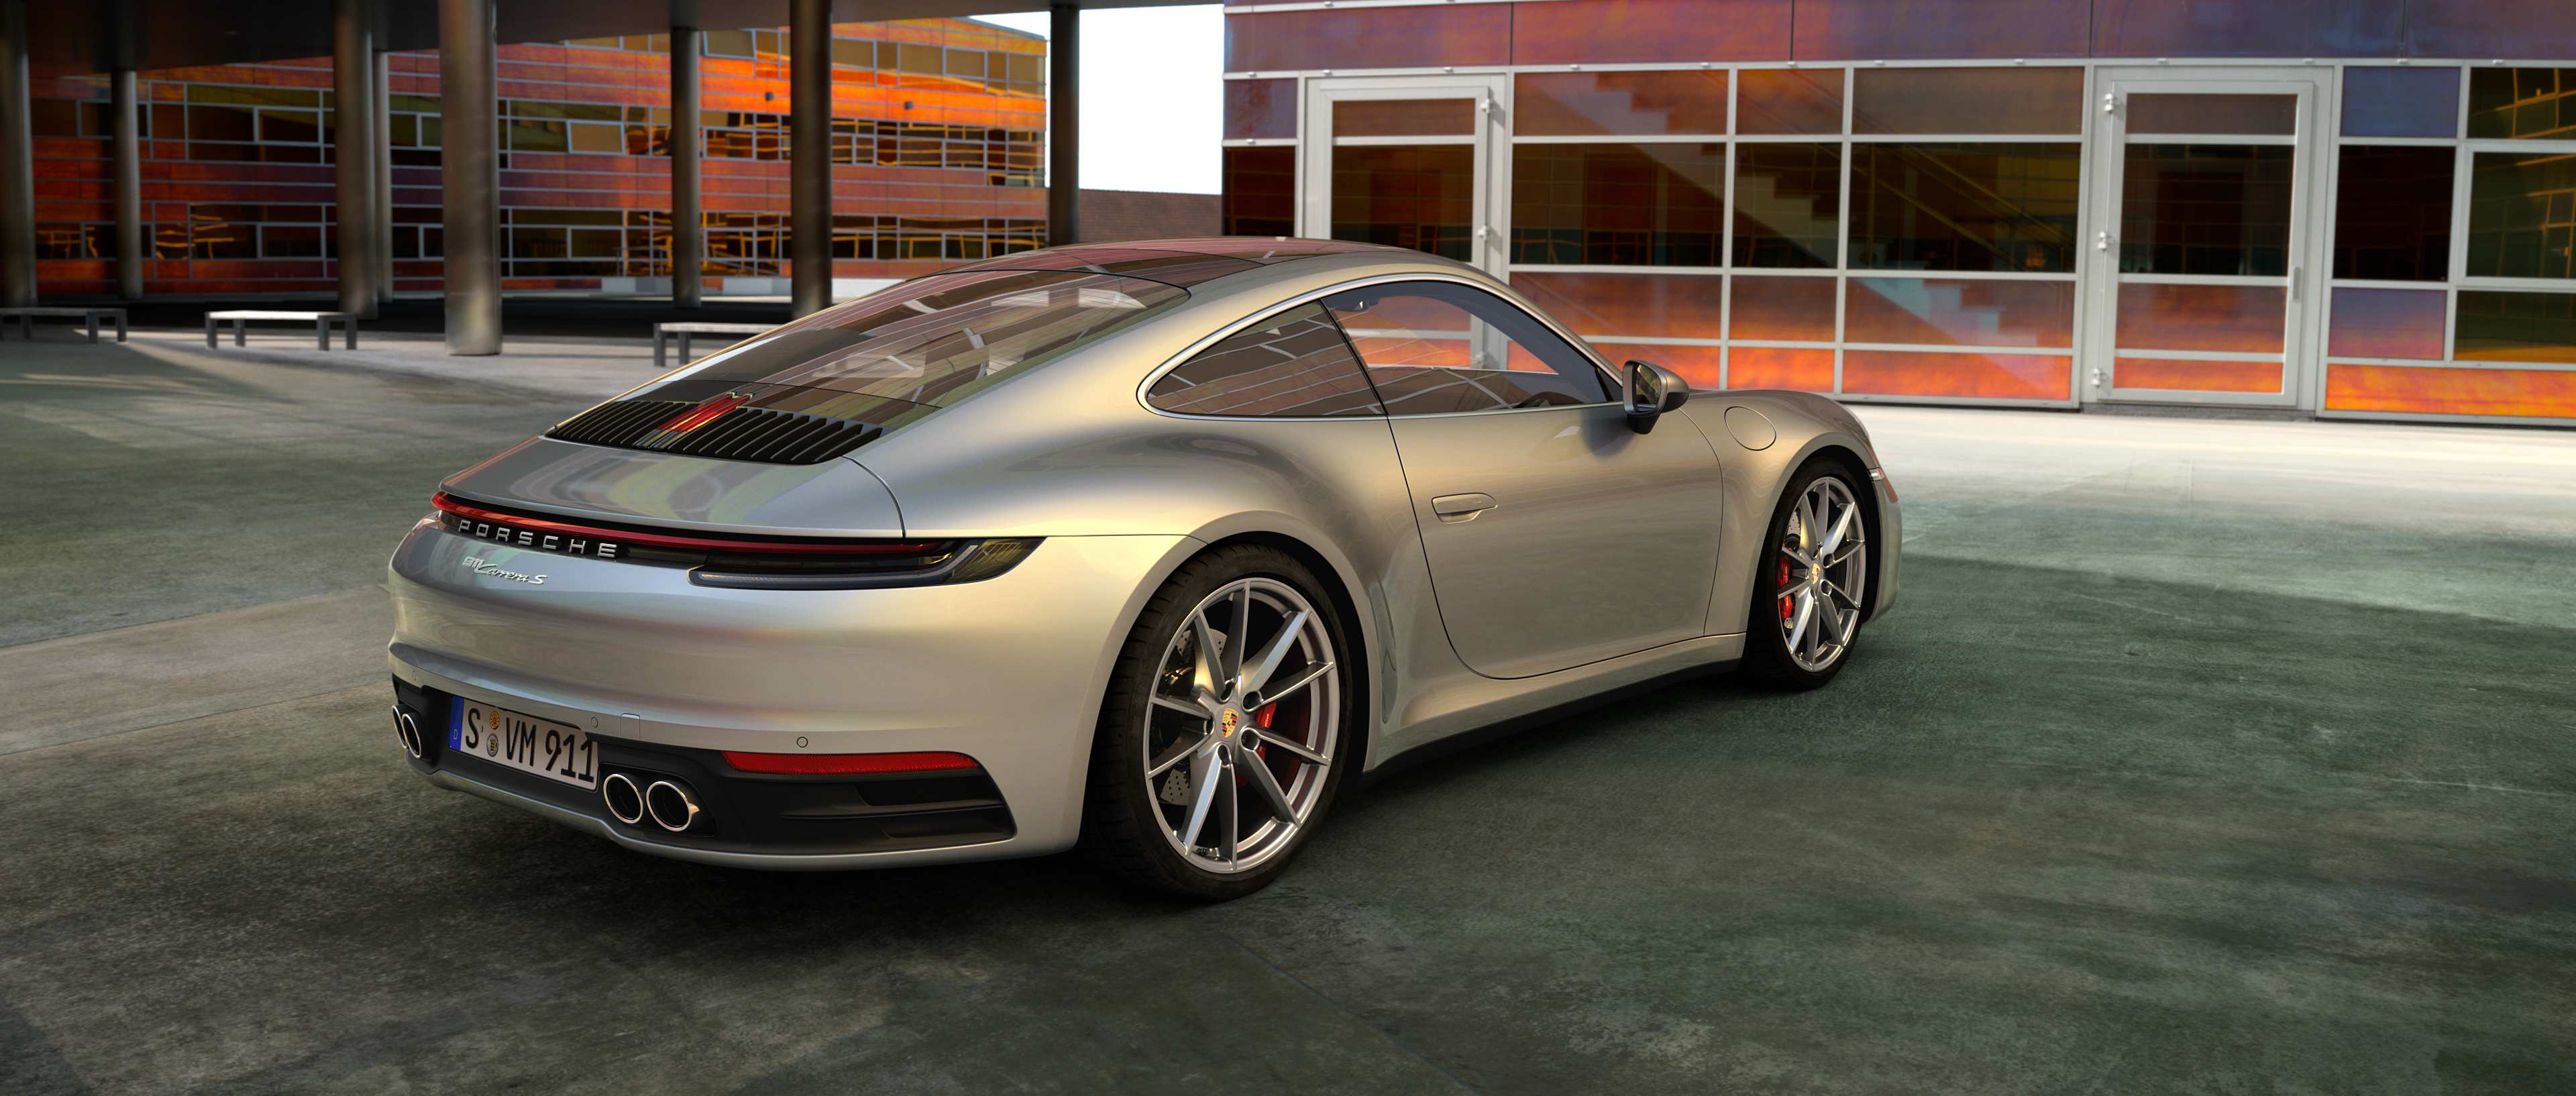 72 The 2019 Porsche 911 Redesign and Concept with 2019 Porsche 911